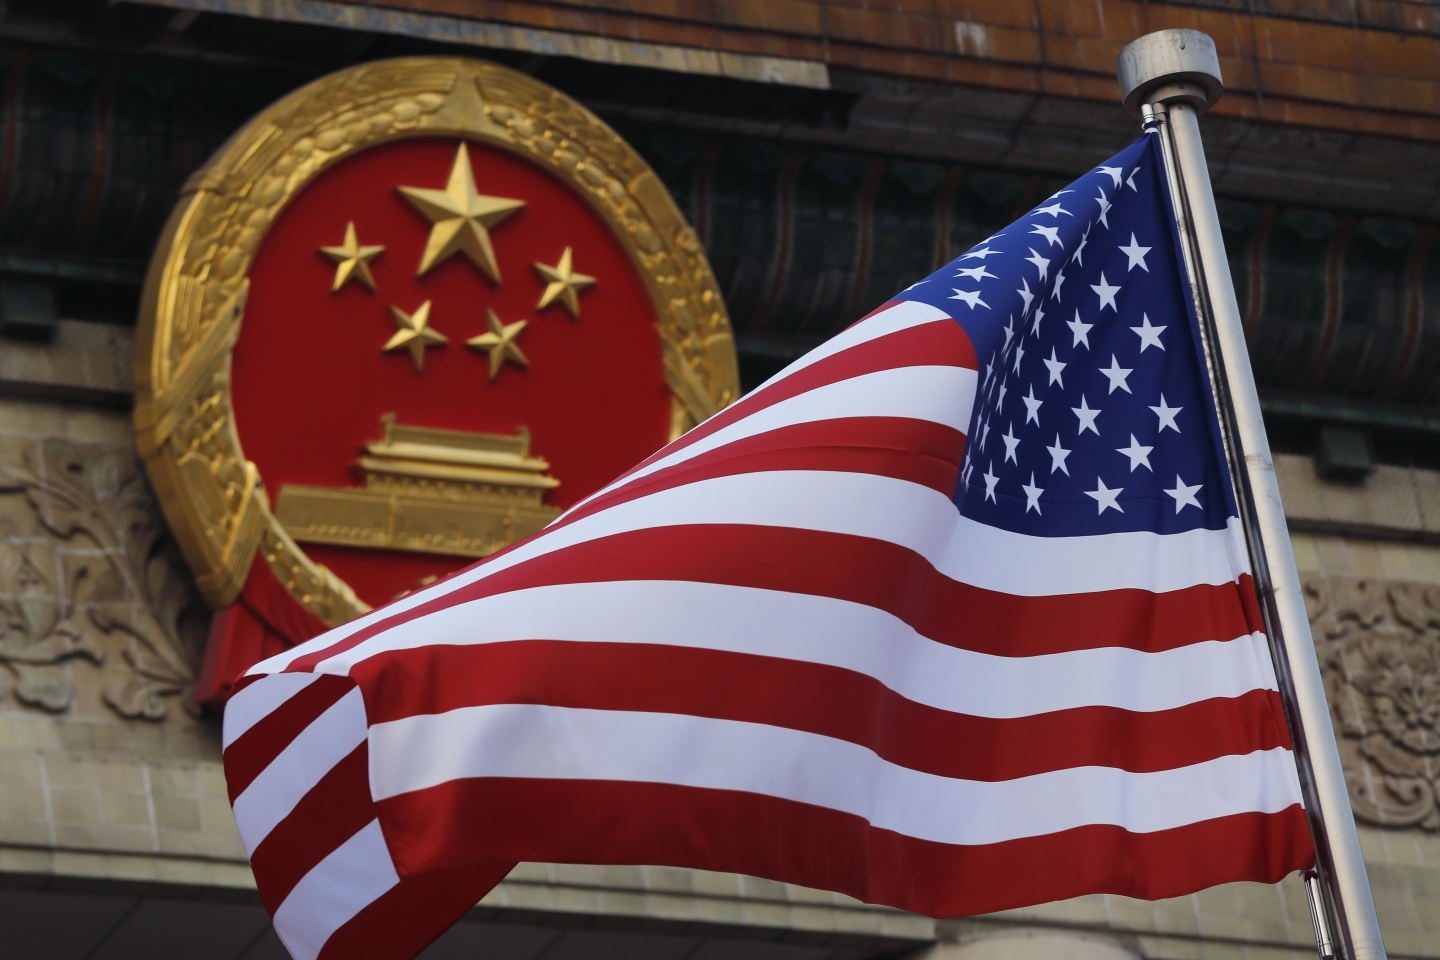 An American flag is flown next to the Chinese national emblem in Beijing (AP Photo/Andy Wong)